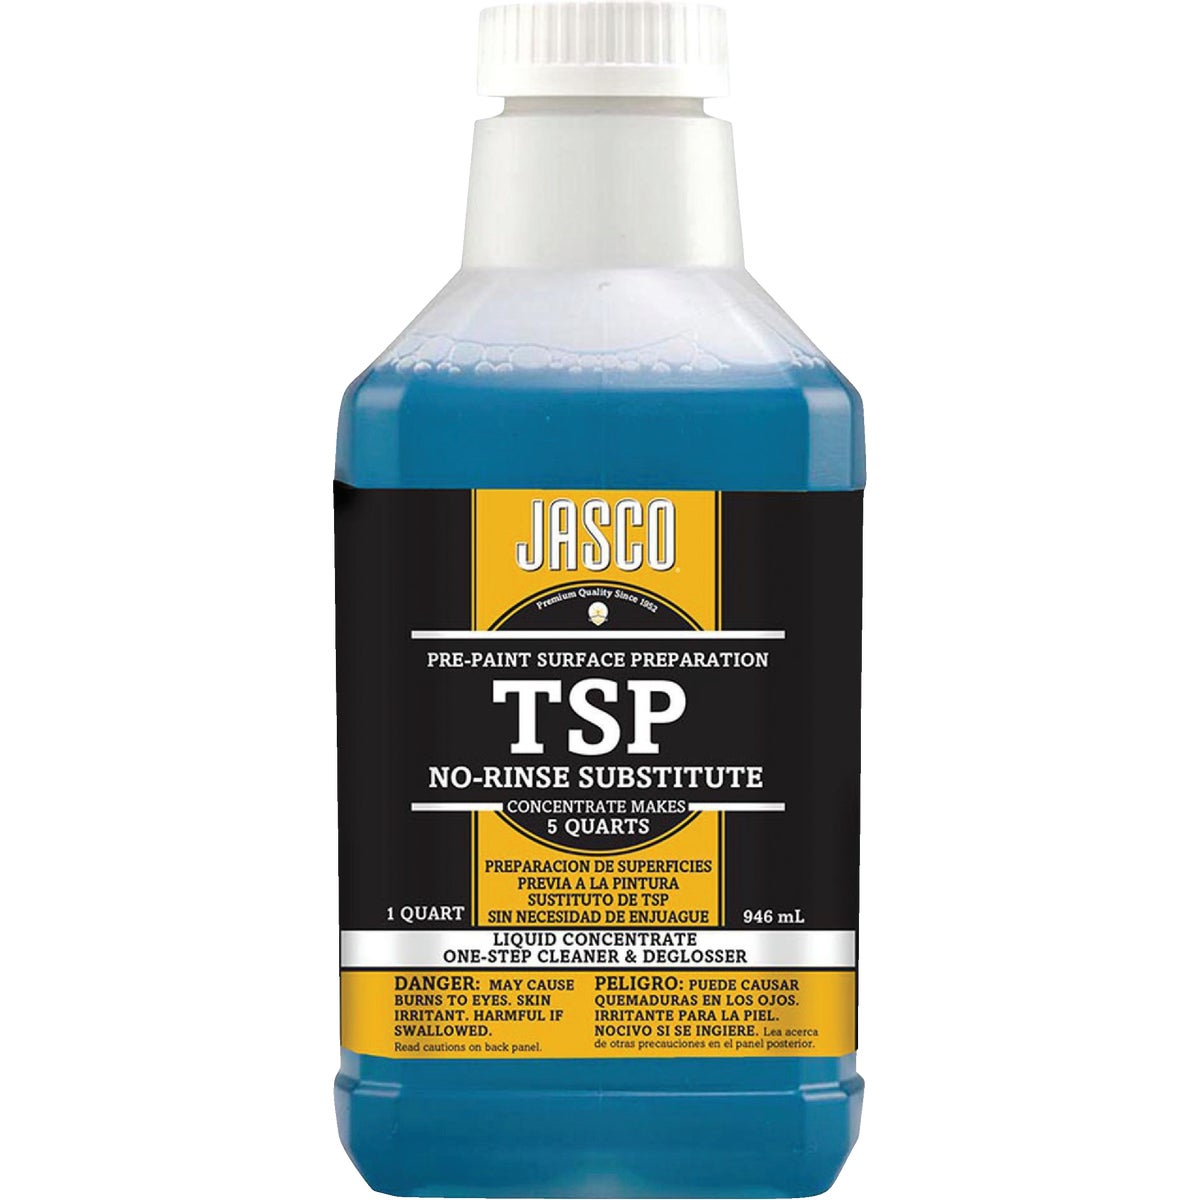 LIQUID TSP SUBSTITUTE - QJTS00408 by Wm Barr Company